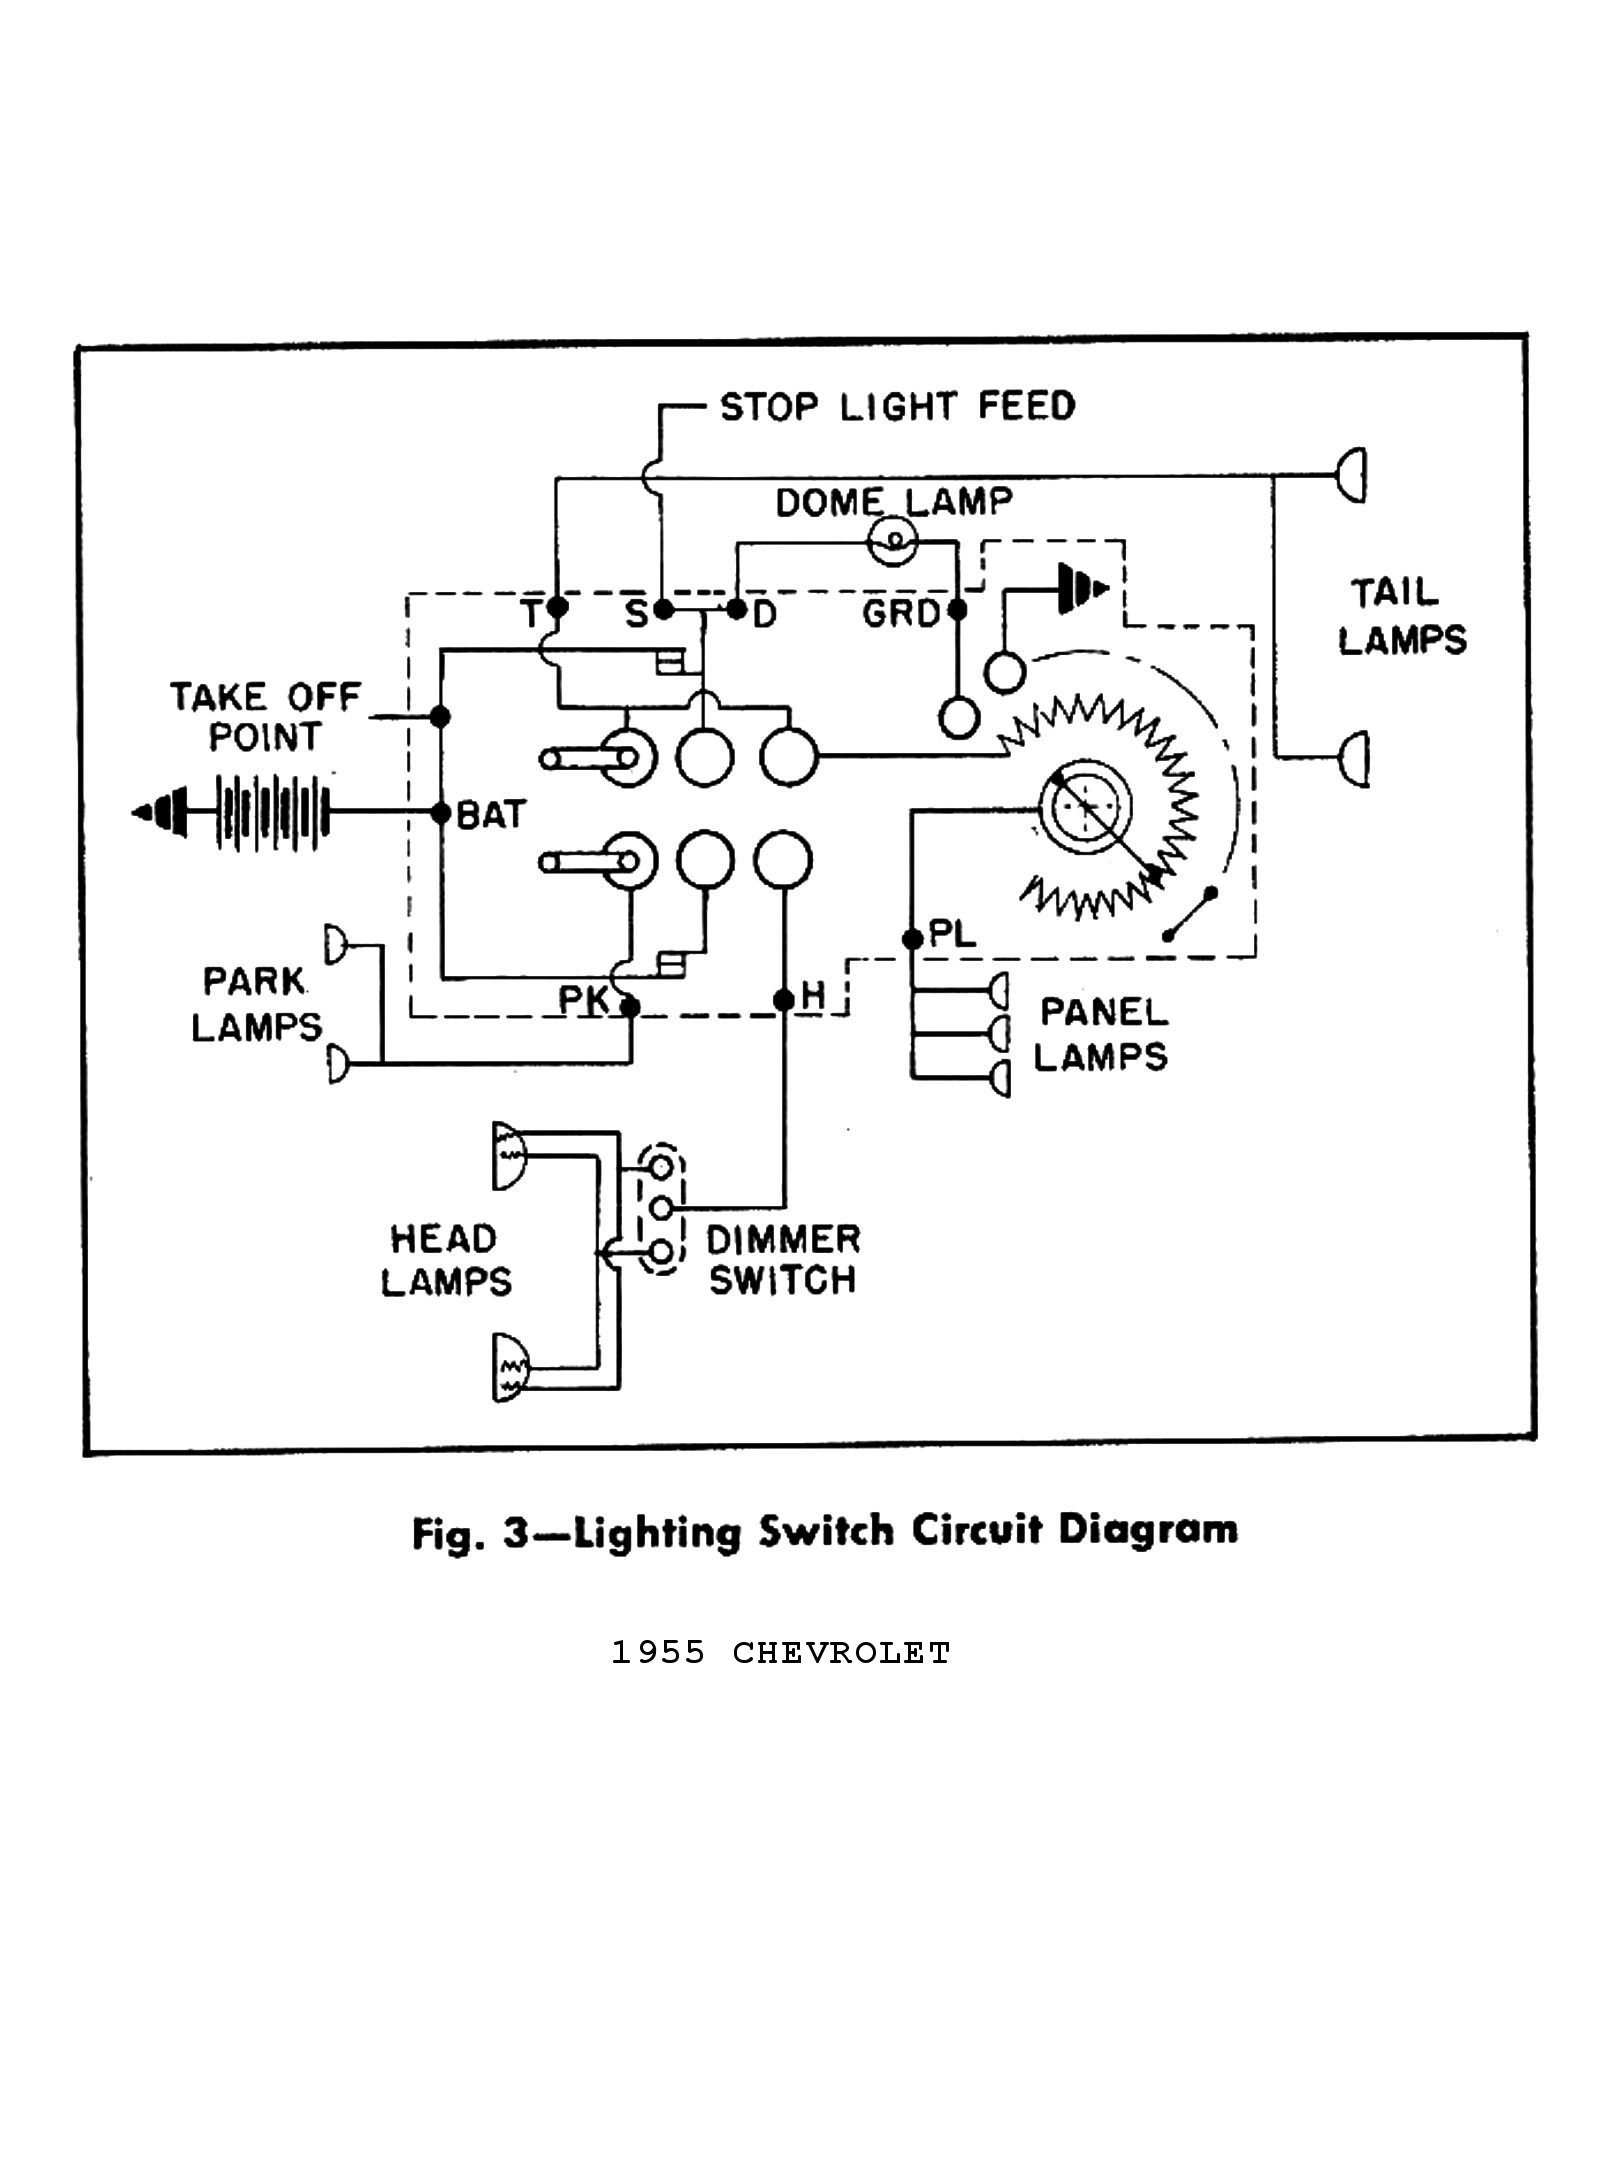 55ctsm1203 chevy wiring diagrams club car ignition switch wiring diagram at readyjetset.co